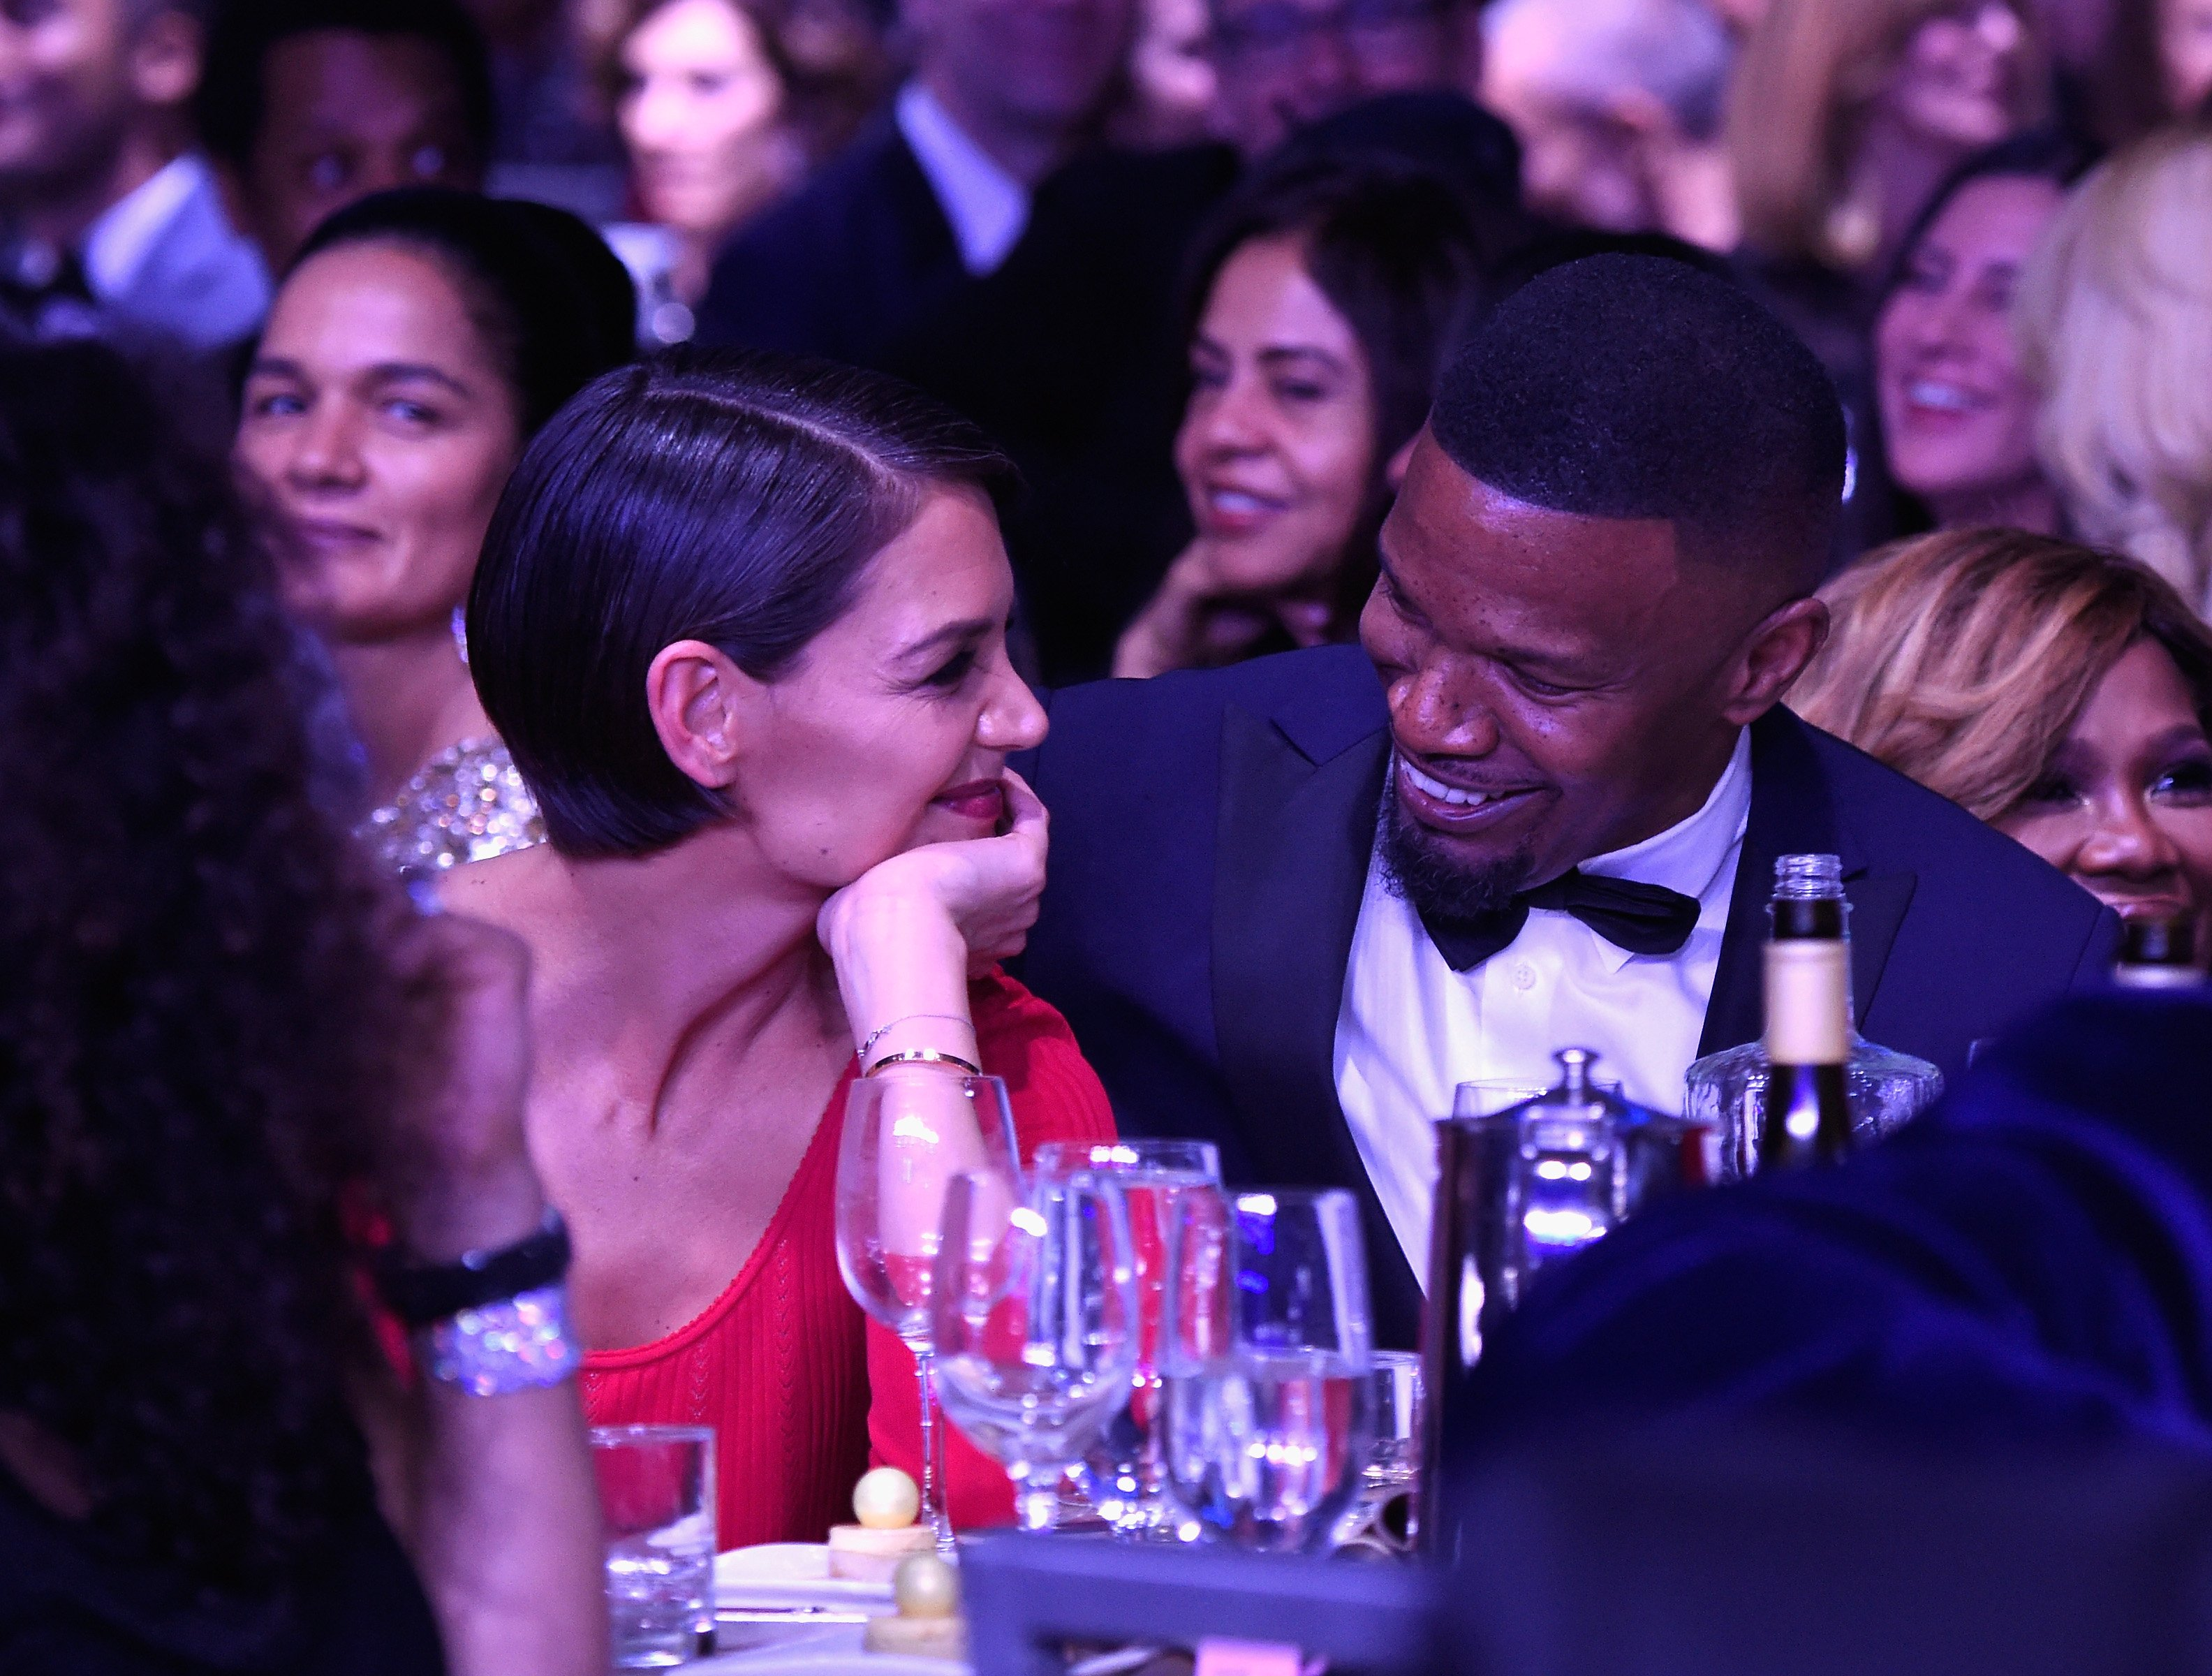 Jamie Foxx and Katie Holmes attend the Clive Davis and Recording Academy's Pre-Grammy Gala in New York City on January 27, 2018 | Photo: Getty Images